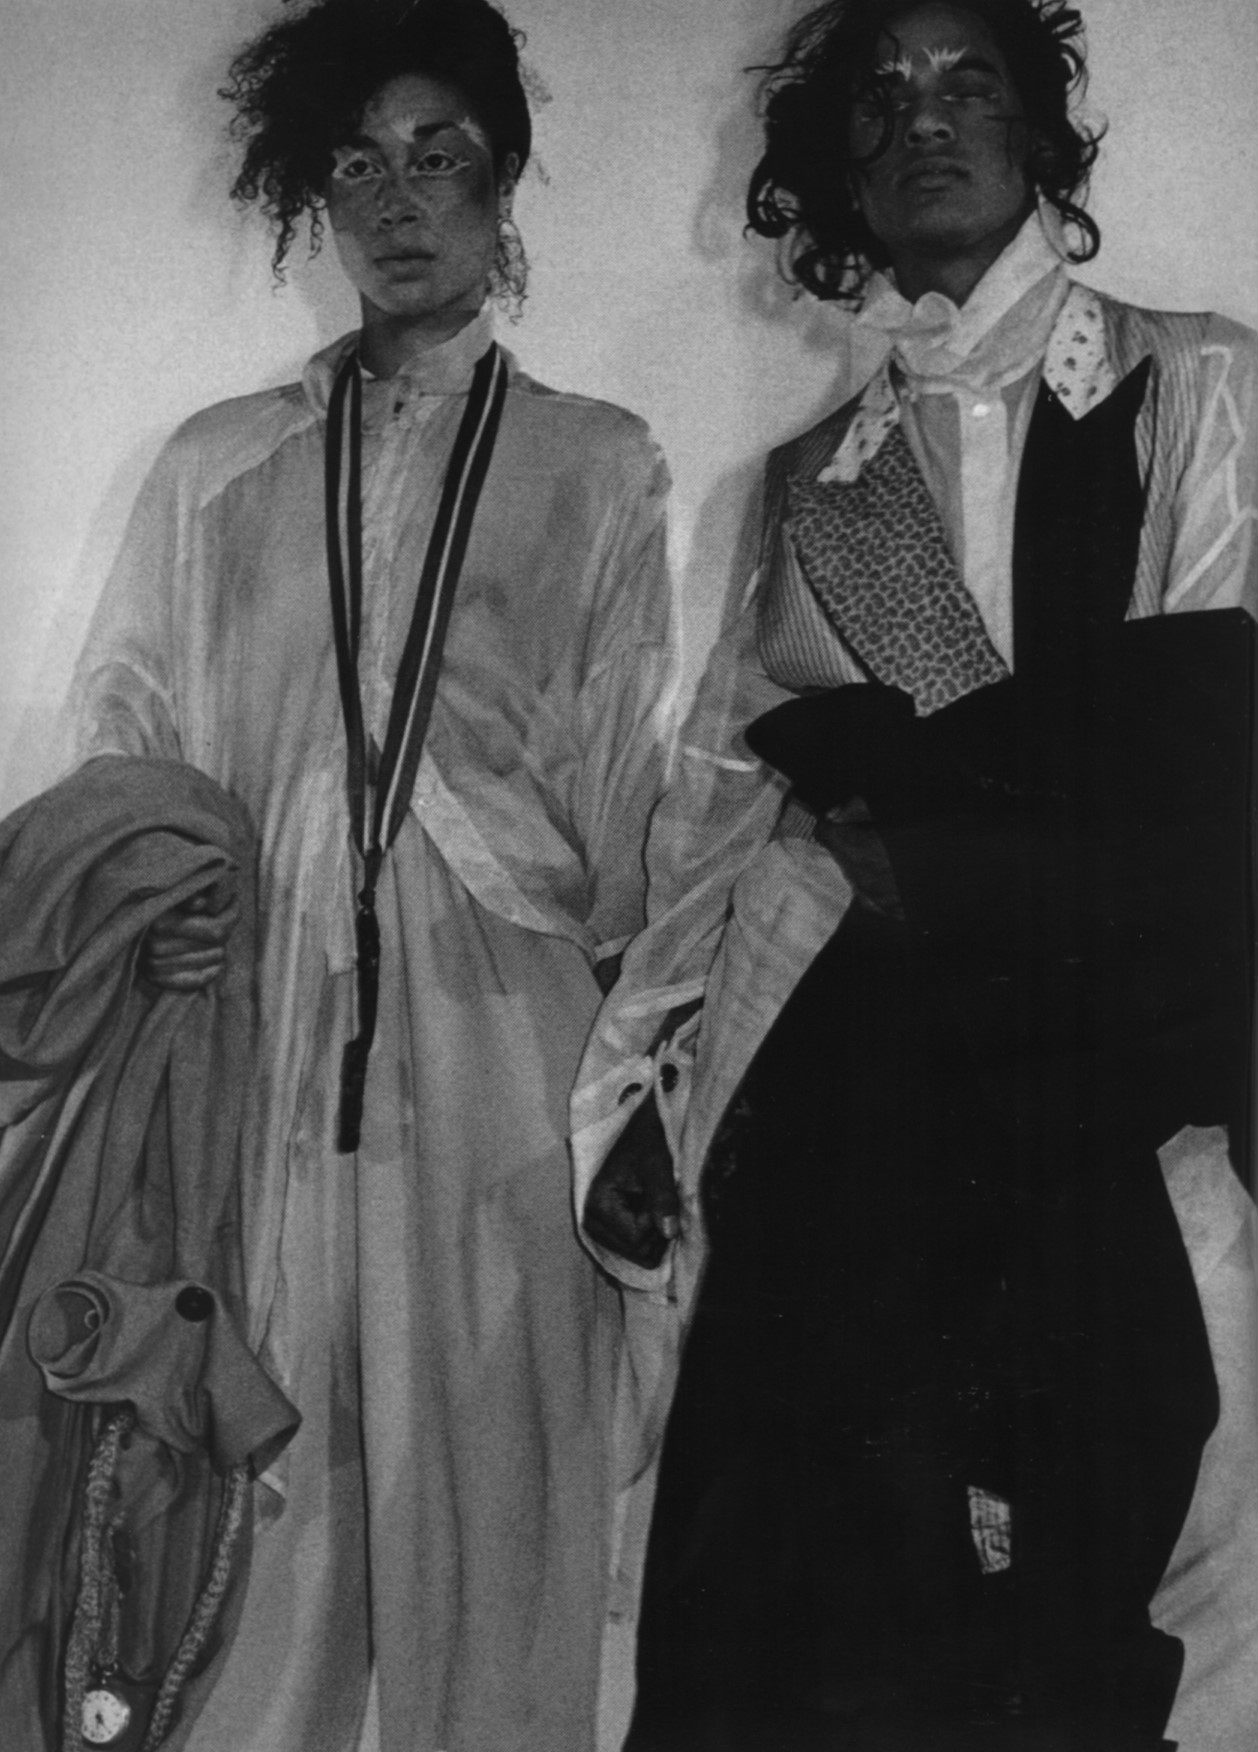 les incroyables john  galliano's graduate show st martins june 1984 london photography chris moore pop magazine aw 2003